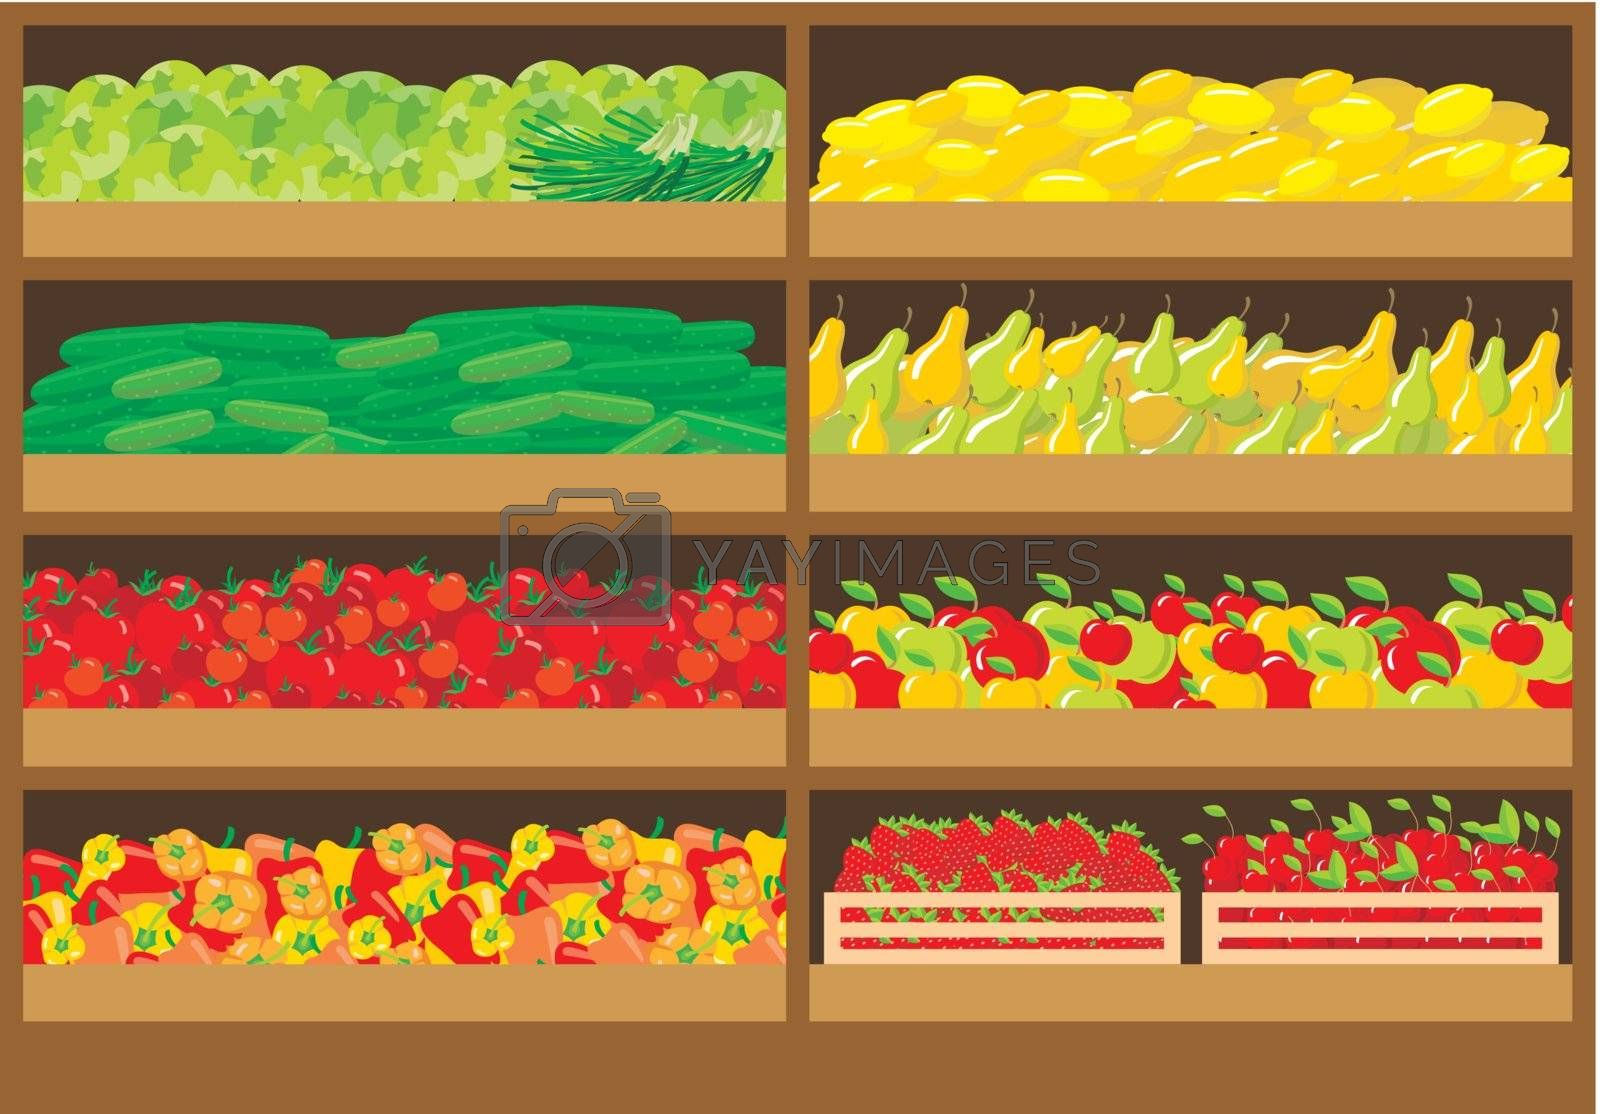 Image of shelves with different vegetables in the store.